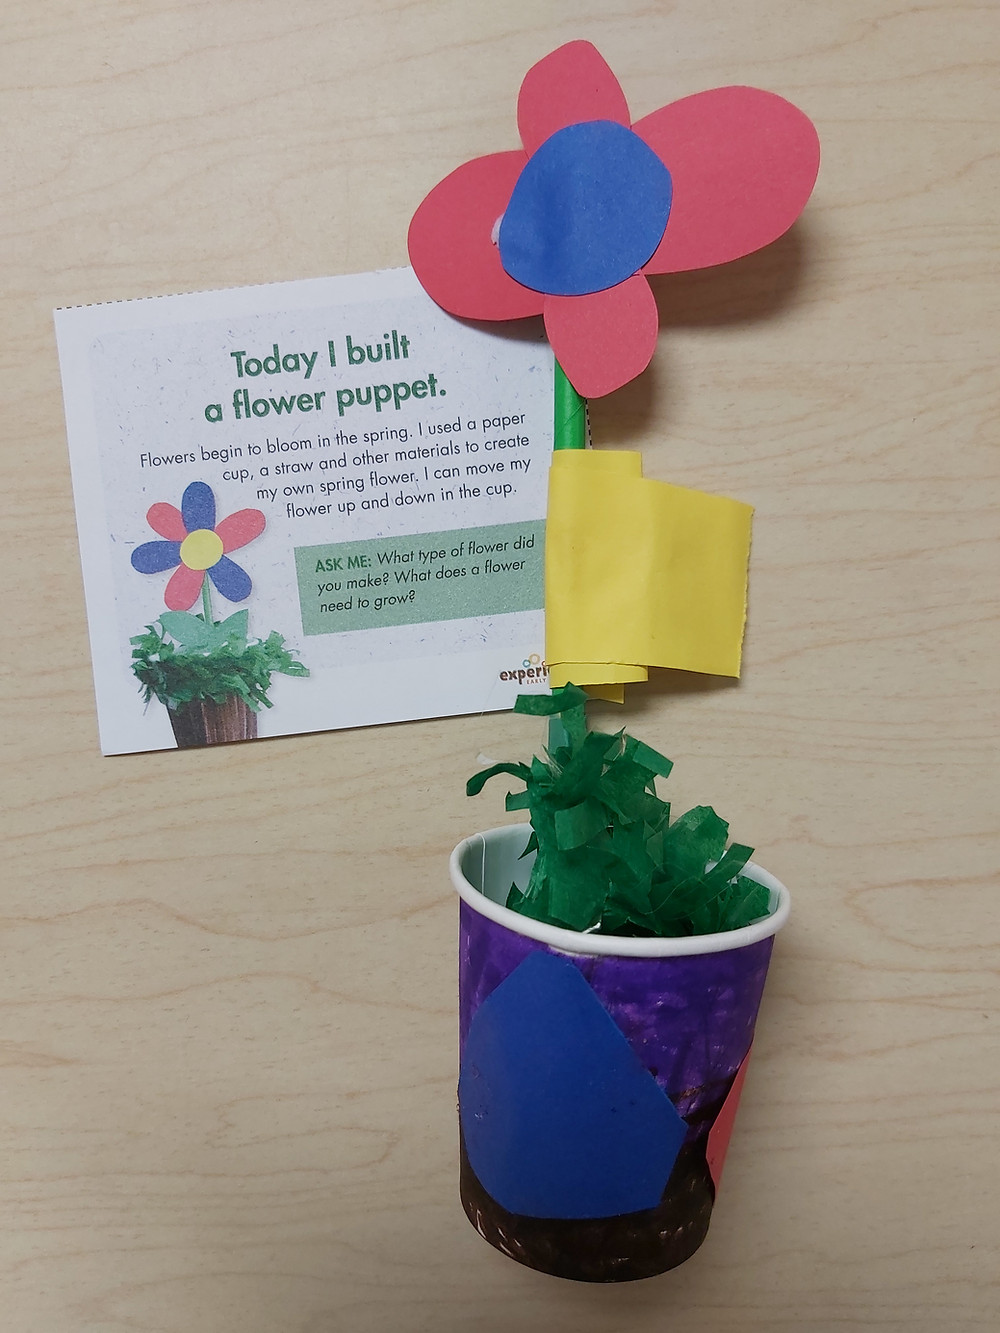 child's finished flower puppet with daily note